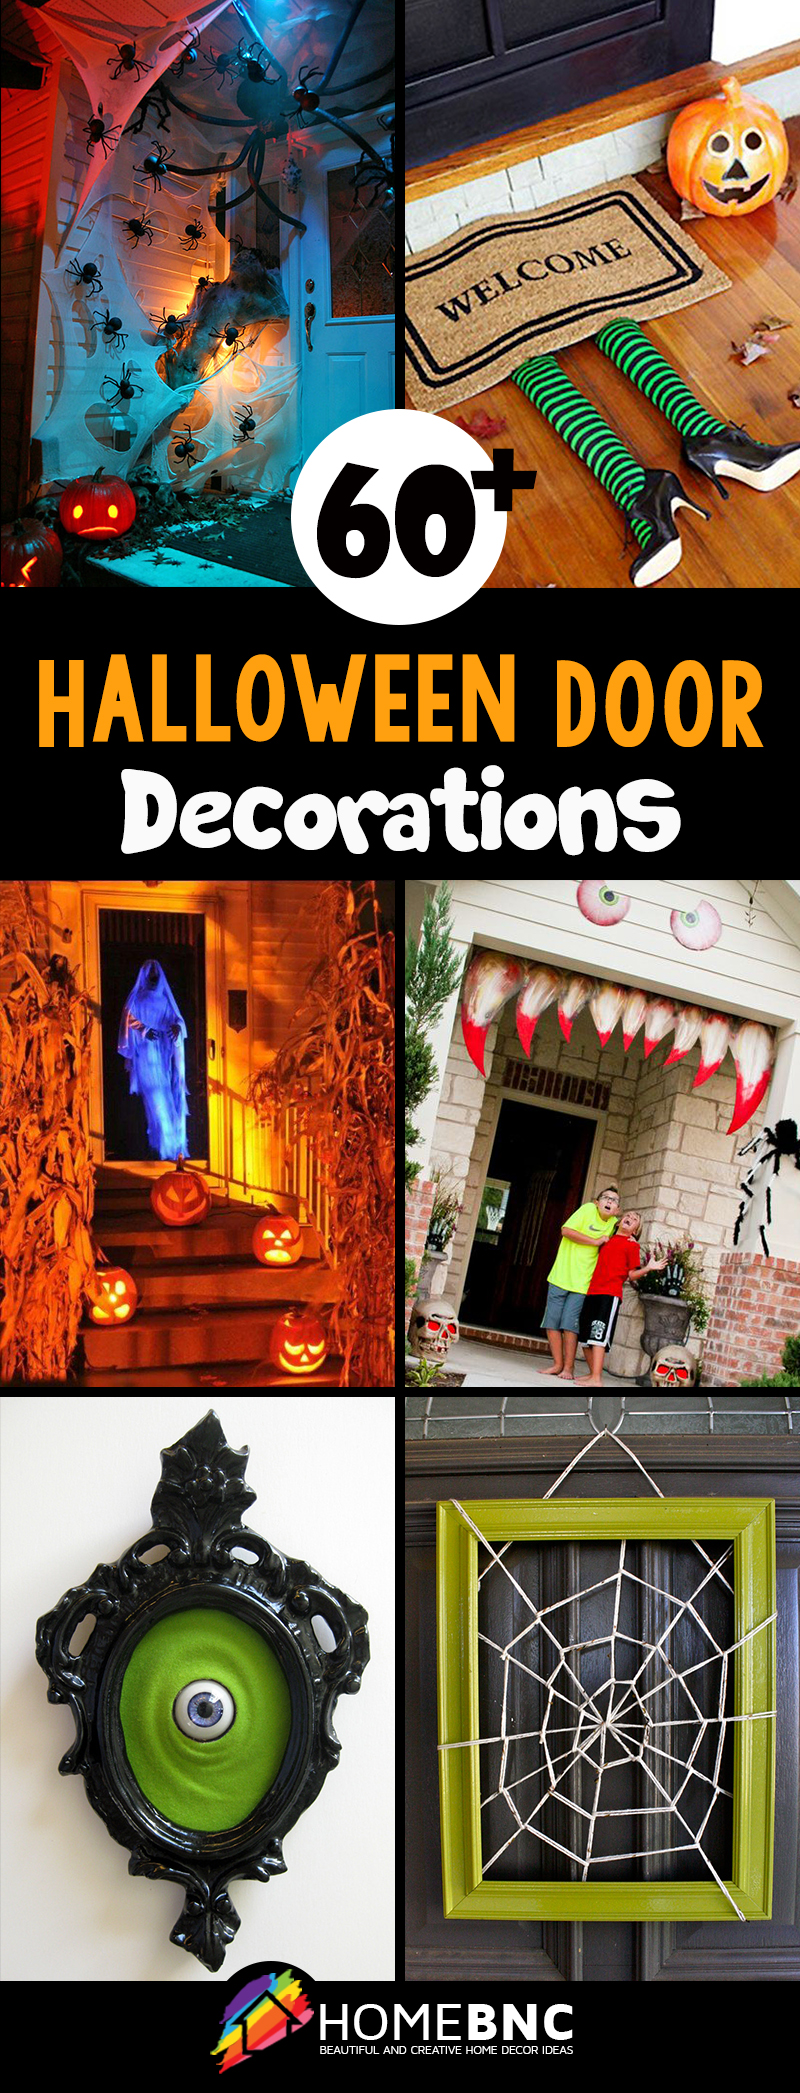 halloween door decoration ideas - Creative Halloween Door Decorations